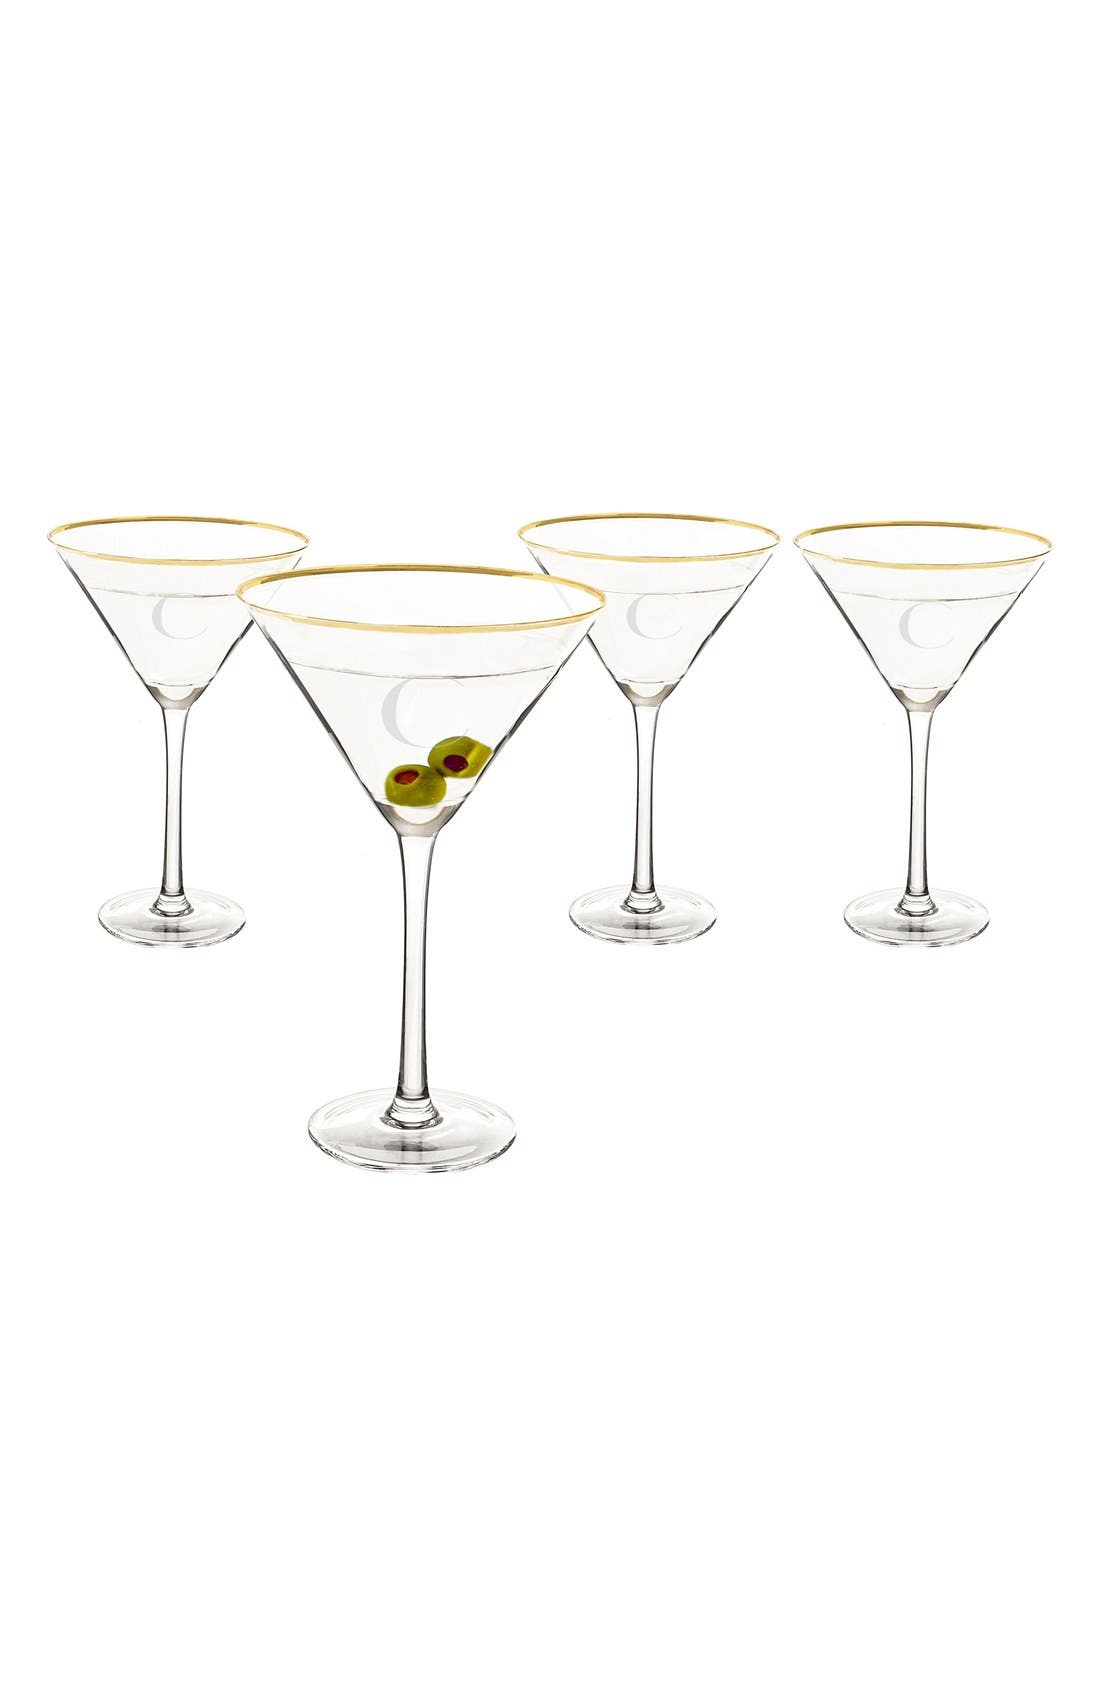 Cathy's Concepts Set of 4 Gold Rimmed Monogram Martini Glasses